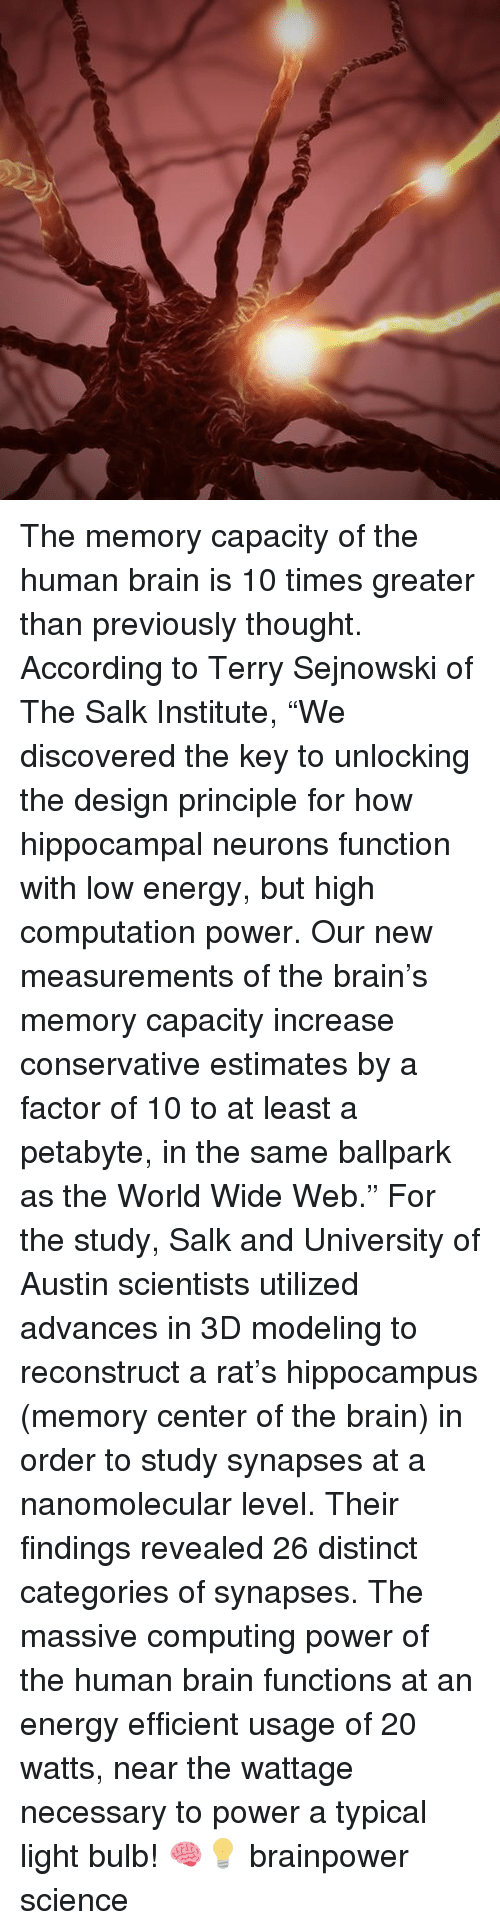 """computing: The memory capacity of the human brain is 10 times greater than previously thought. According to Terry Sejnowski of The Salk Institute, """"We discovered the key to unlocking the design principle for how hippocampal neurons function with low energy, but high computation power. Our new measurements of the brain's memory capacity increase conservative estimates by a factor of 10 to at least a petabyte, in the same ballpark as the World Wide Web."""" For the study, Salk and University of Austin scientists utilized advances in 3D modeling to reconstruct a rat's hippocampus (memory center of the brain) in order to study synapses at a nanomolecular level. Their findings revealed 26 distinct categories of synapses. The massive computing power of the human brain functions at an energy efficient usage of 20 watts, near the wattage necessary to power a typical light bulb! 🧠💡 brainpower science"""